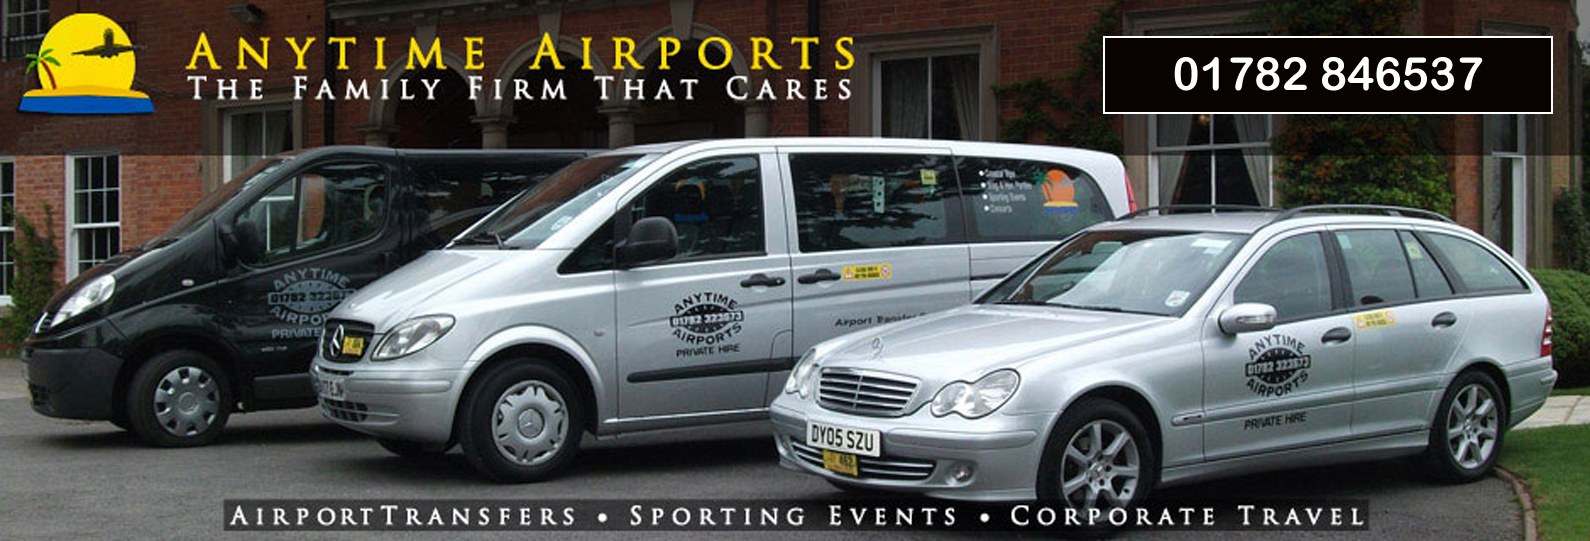 airport transfer vehicles